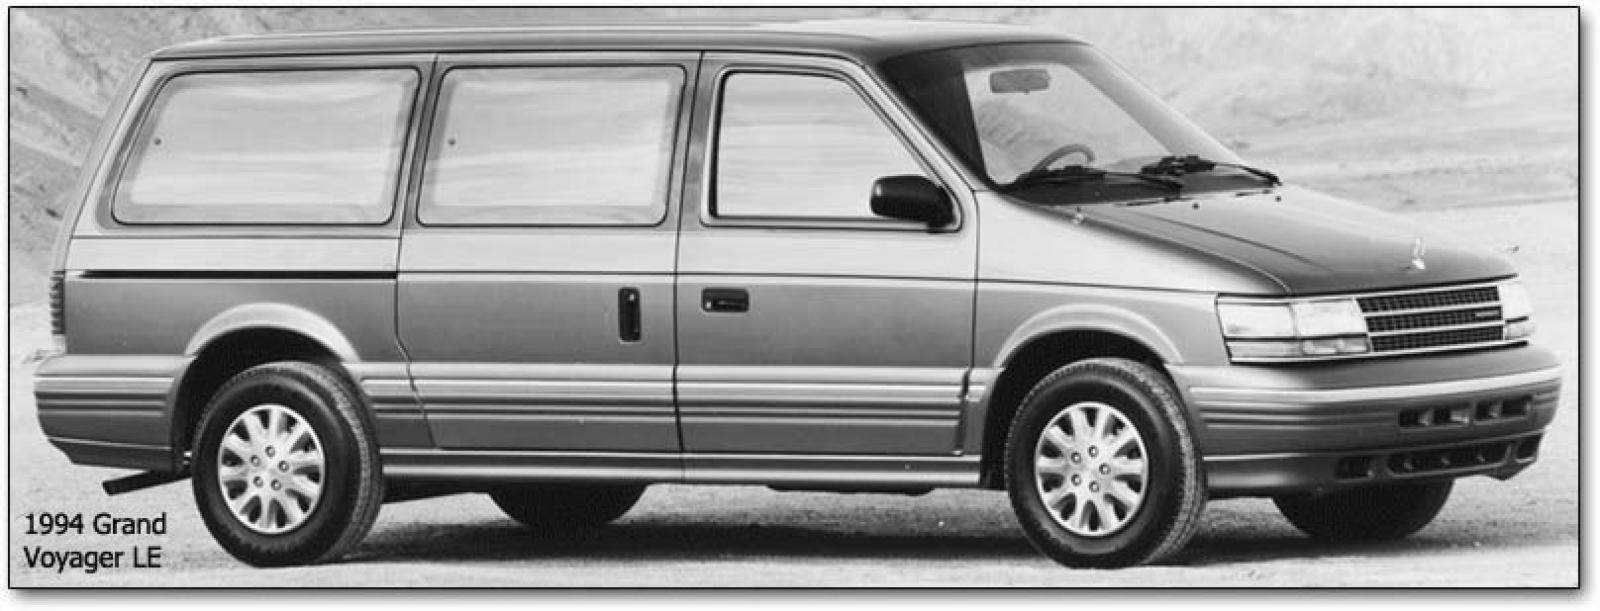 chrysler town and country 6 800 1024 1280 1600 origin 1994